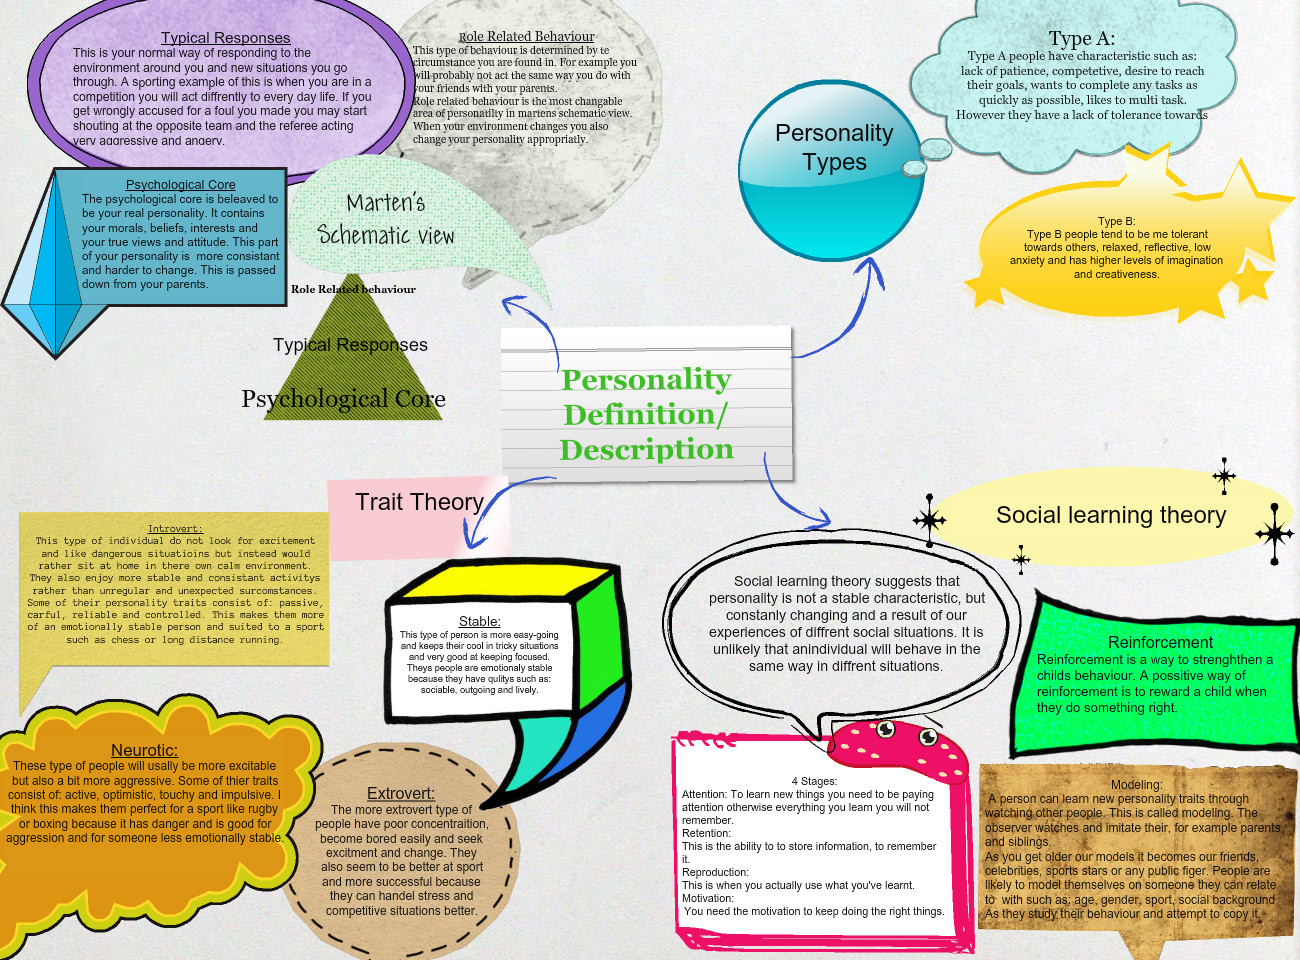 1383832959-source What Is Martens Schematic View Of Personality on